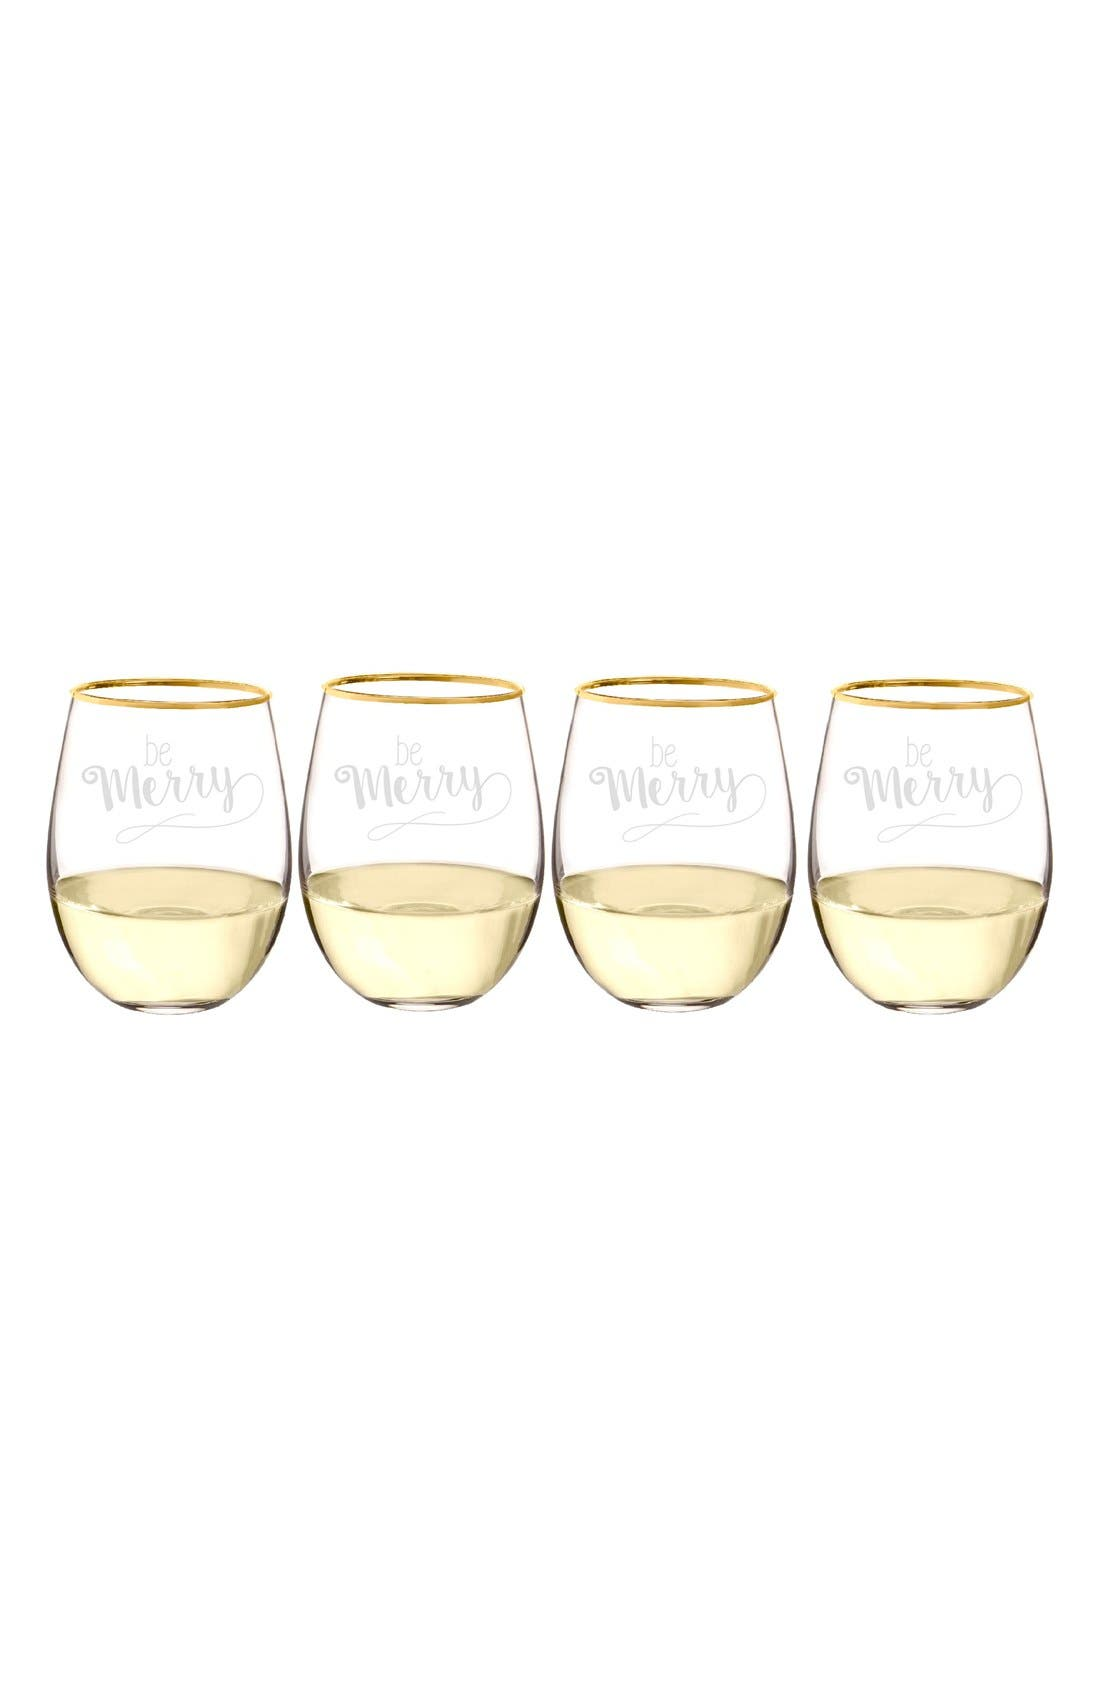 Be Merry Set of 4 Stemless Wine Glasses,                             Alternate thumbnail 2, color,                             710